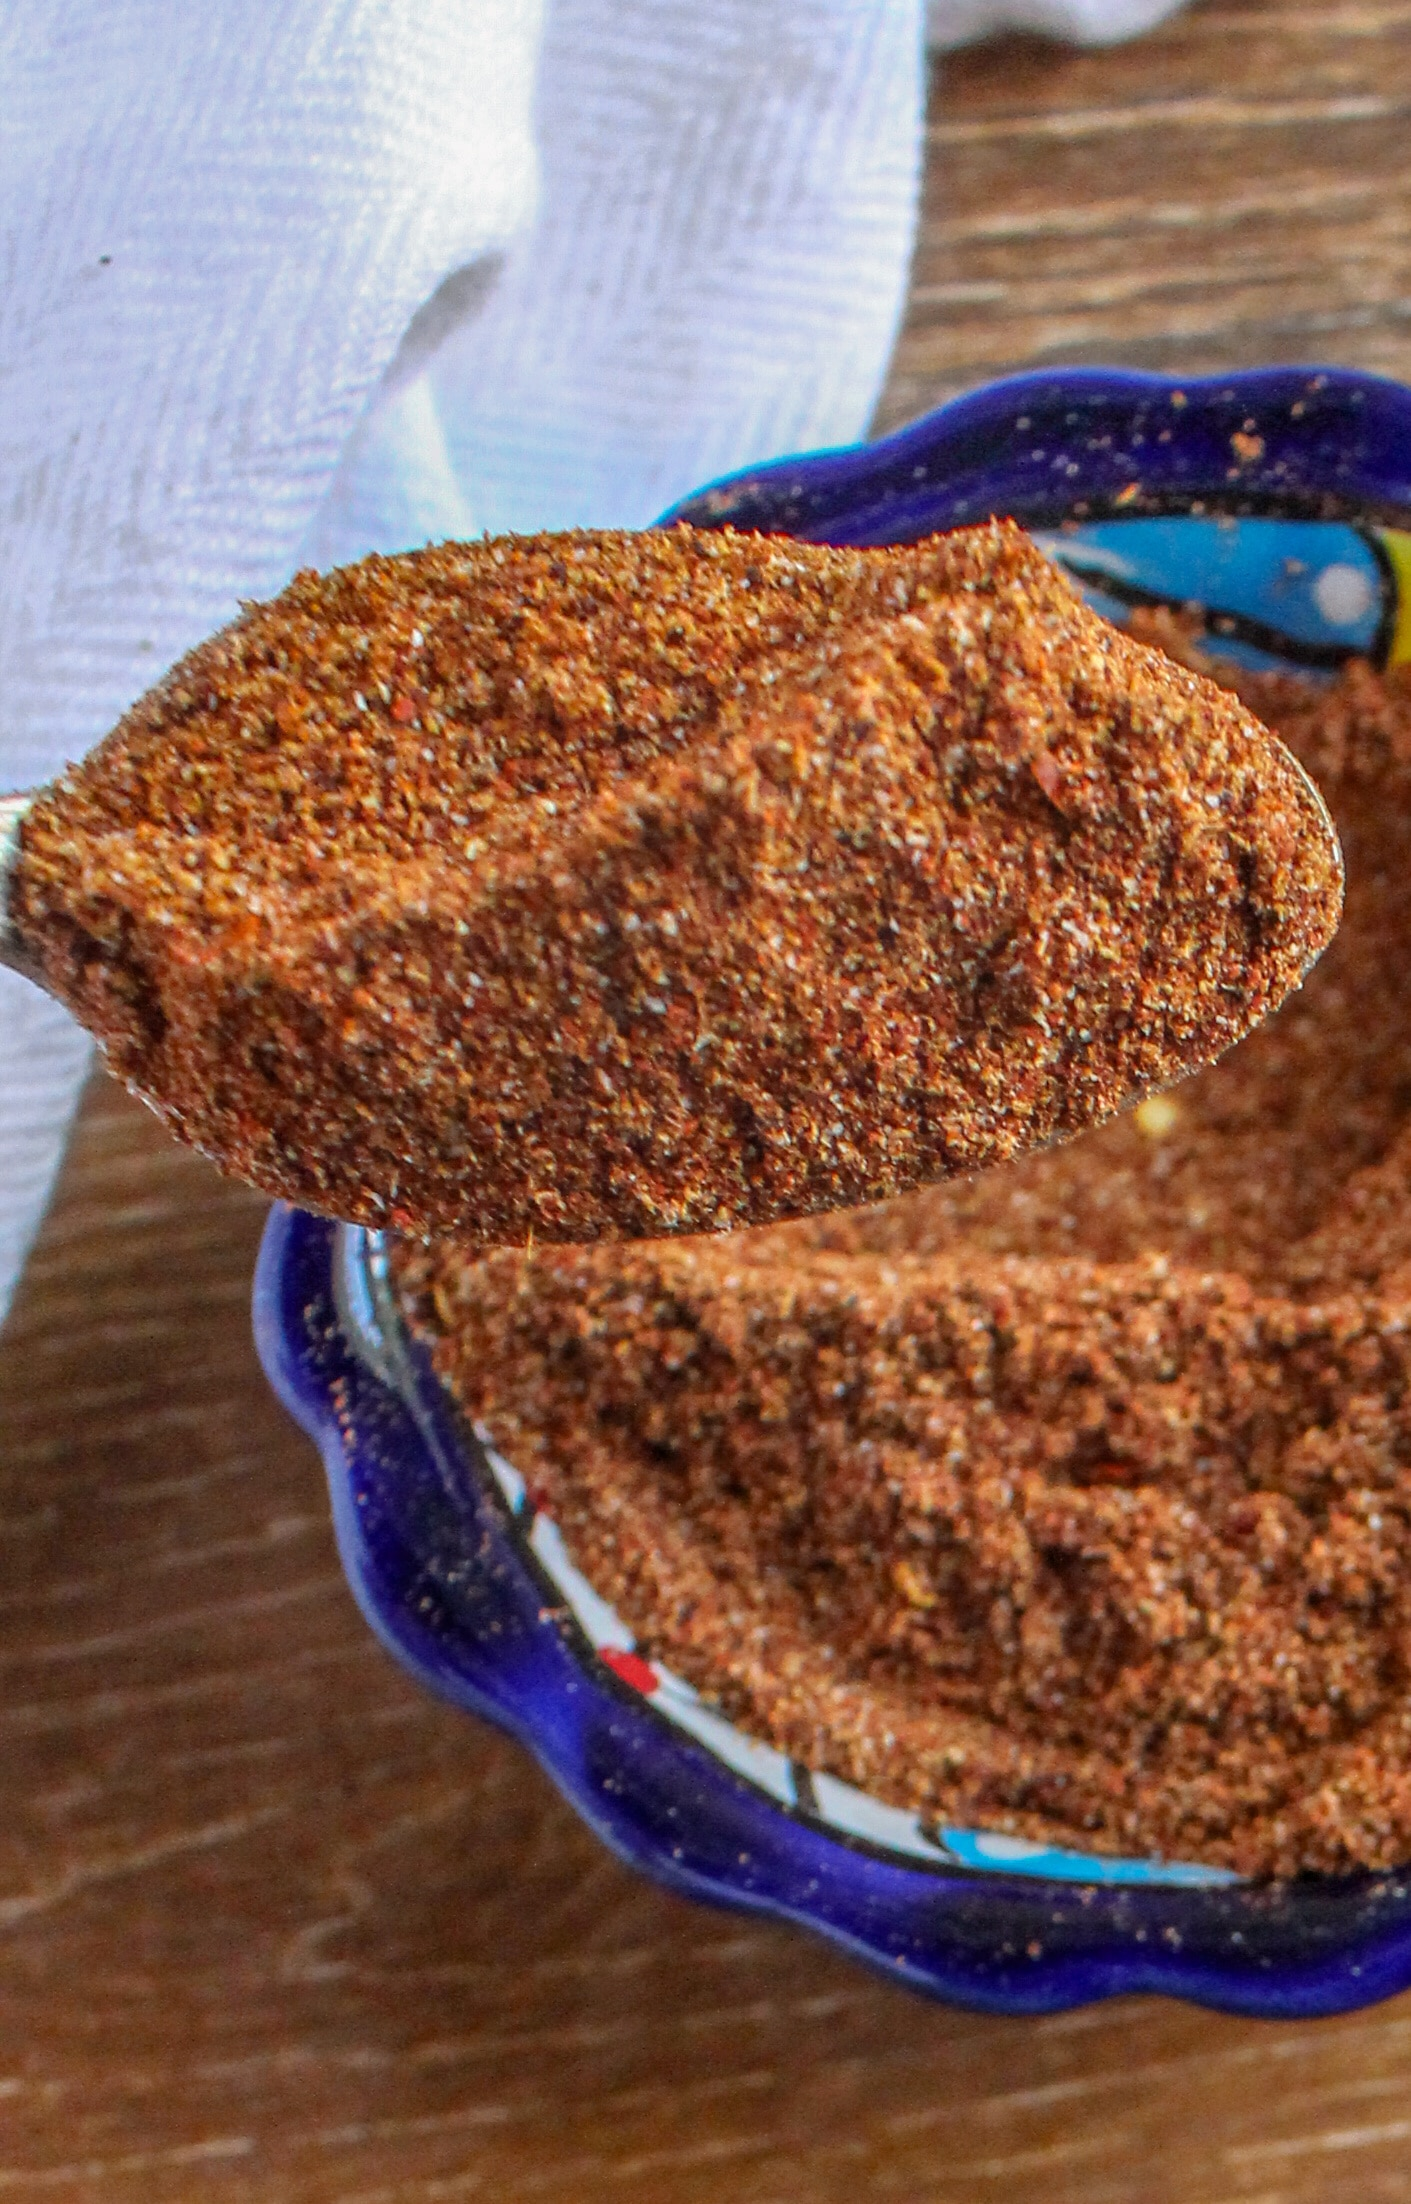 Spoonful of Homemade Taco Seasoning